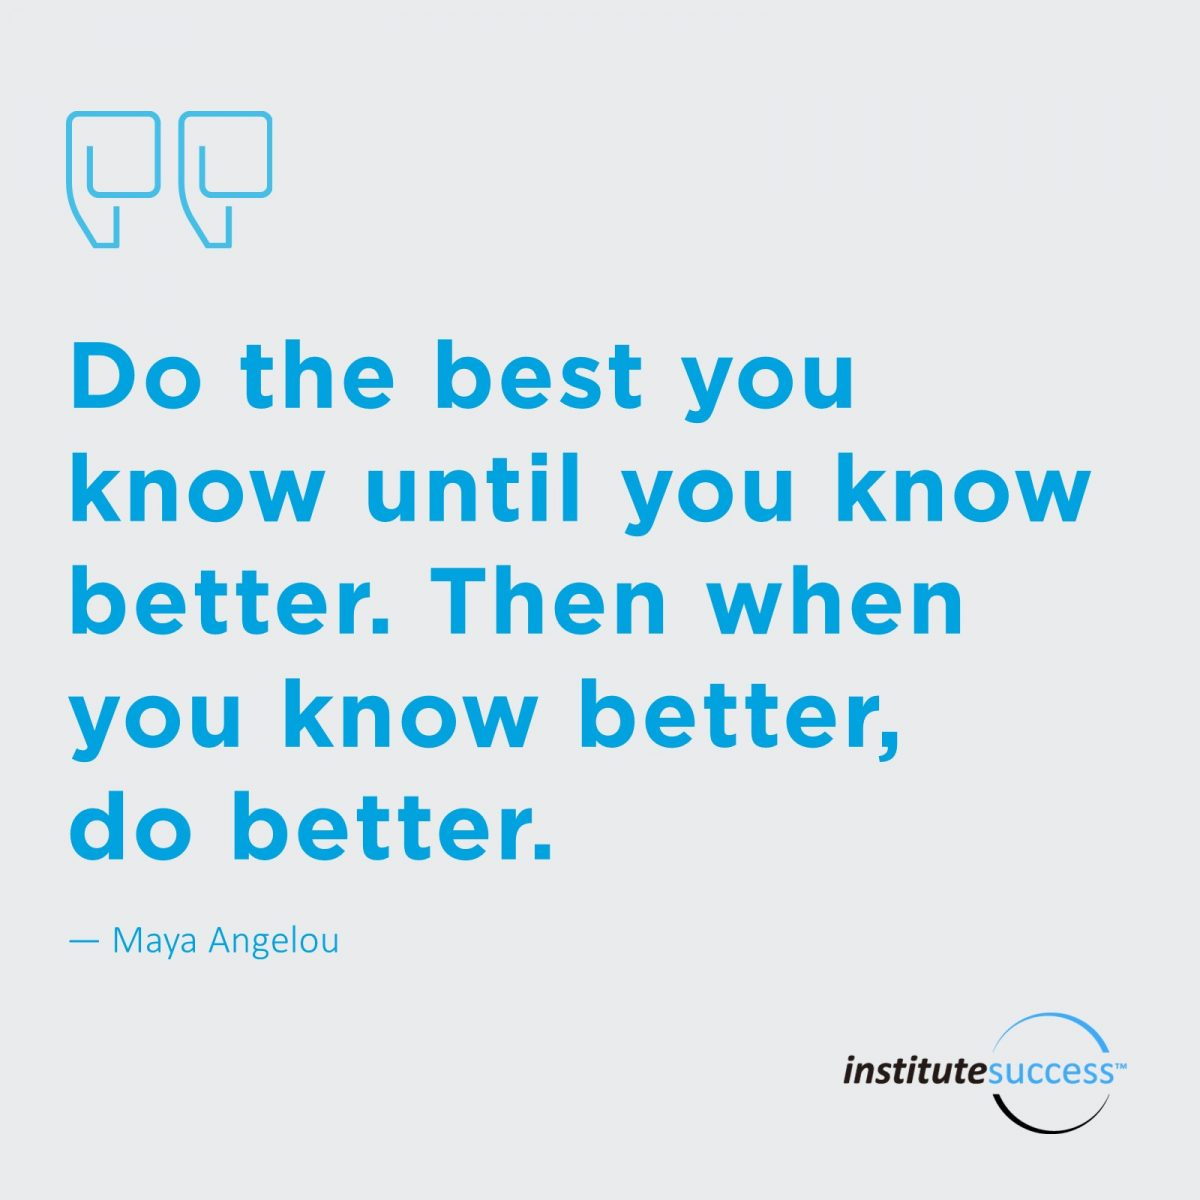 Do the best you know until you know better. Then when you know better, do better. – Maya Angelou